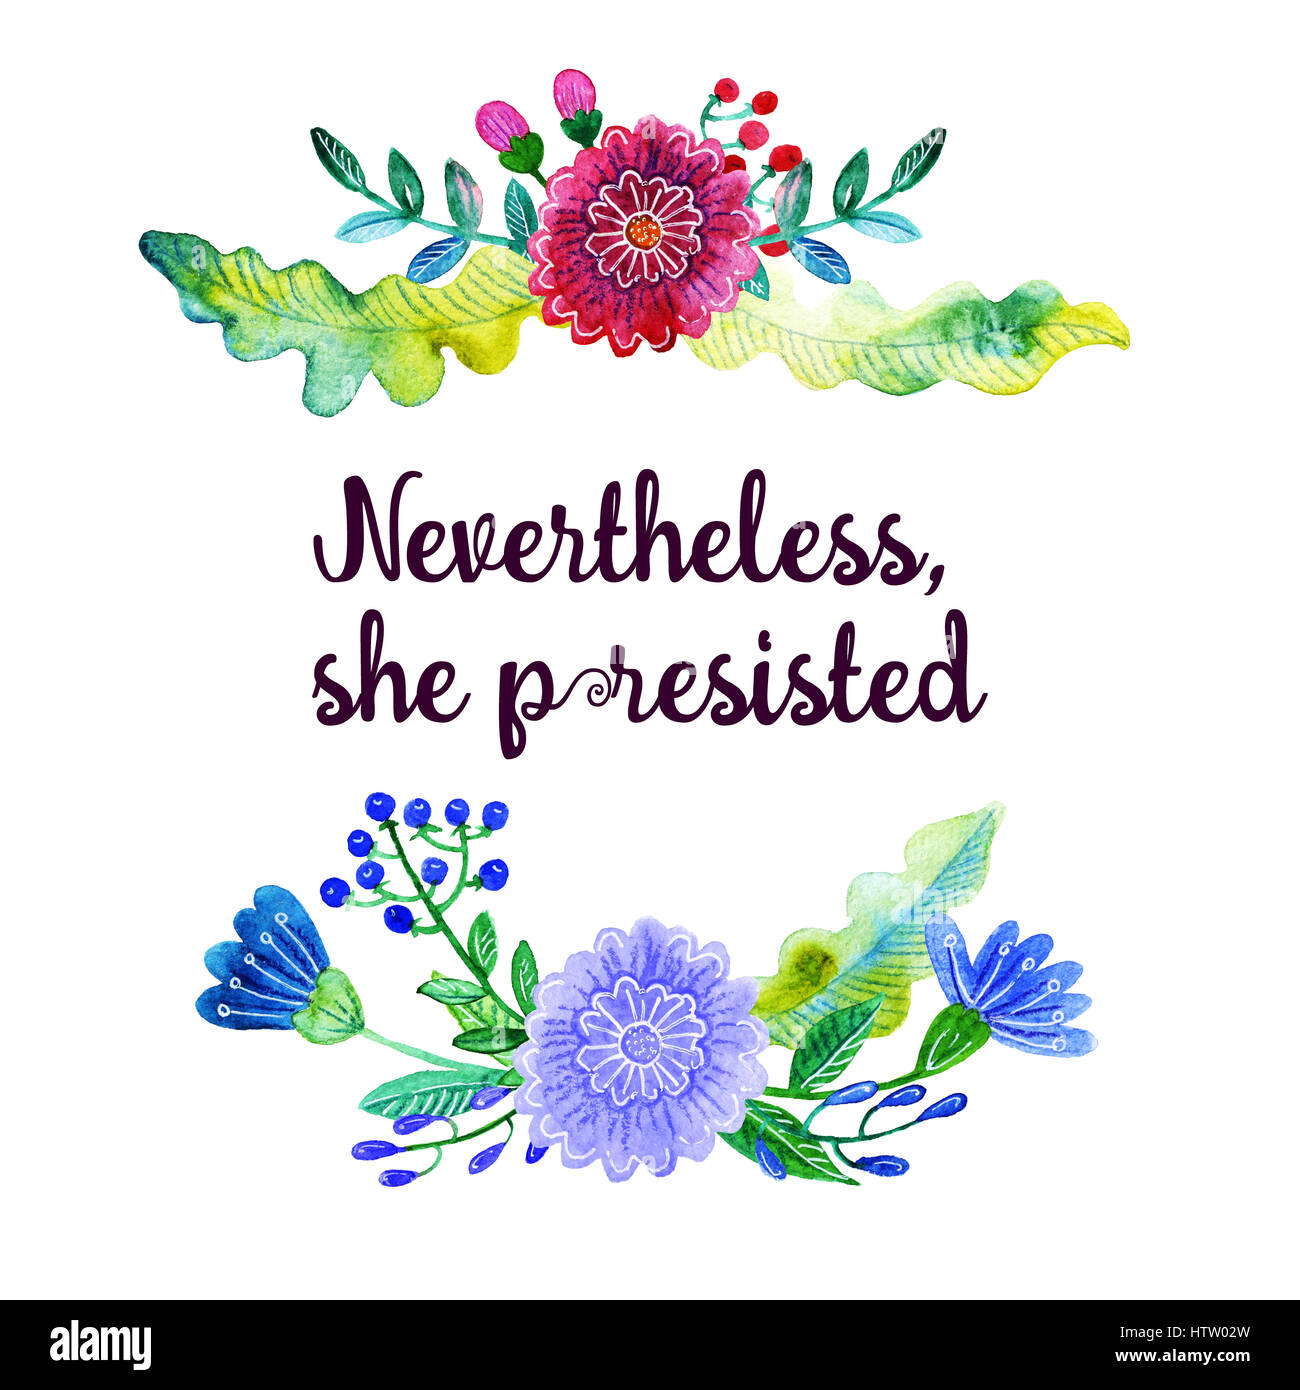 be7058a12 Inscription feminists: Nevertheless, she persisted. The slogan of Ink Riot.  Womens protest